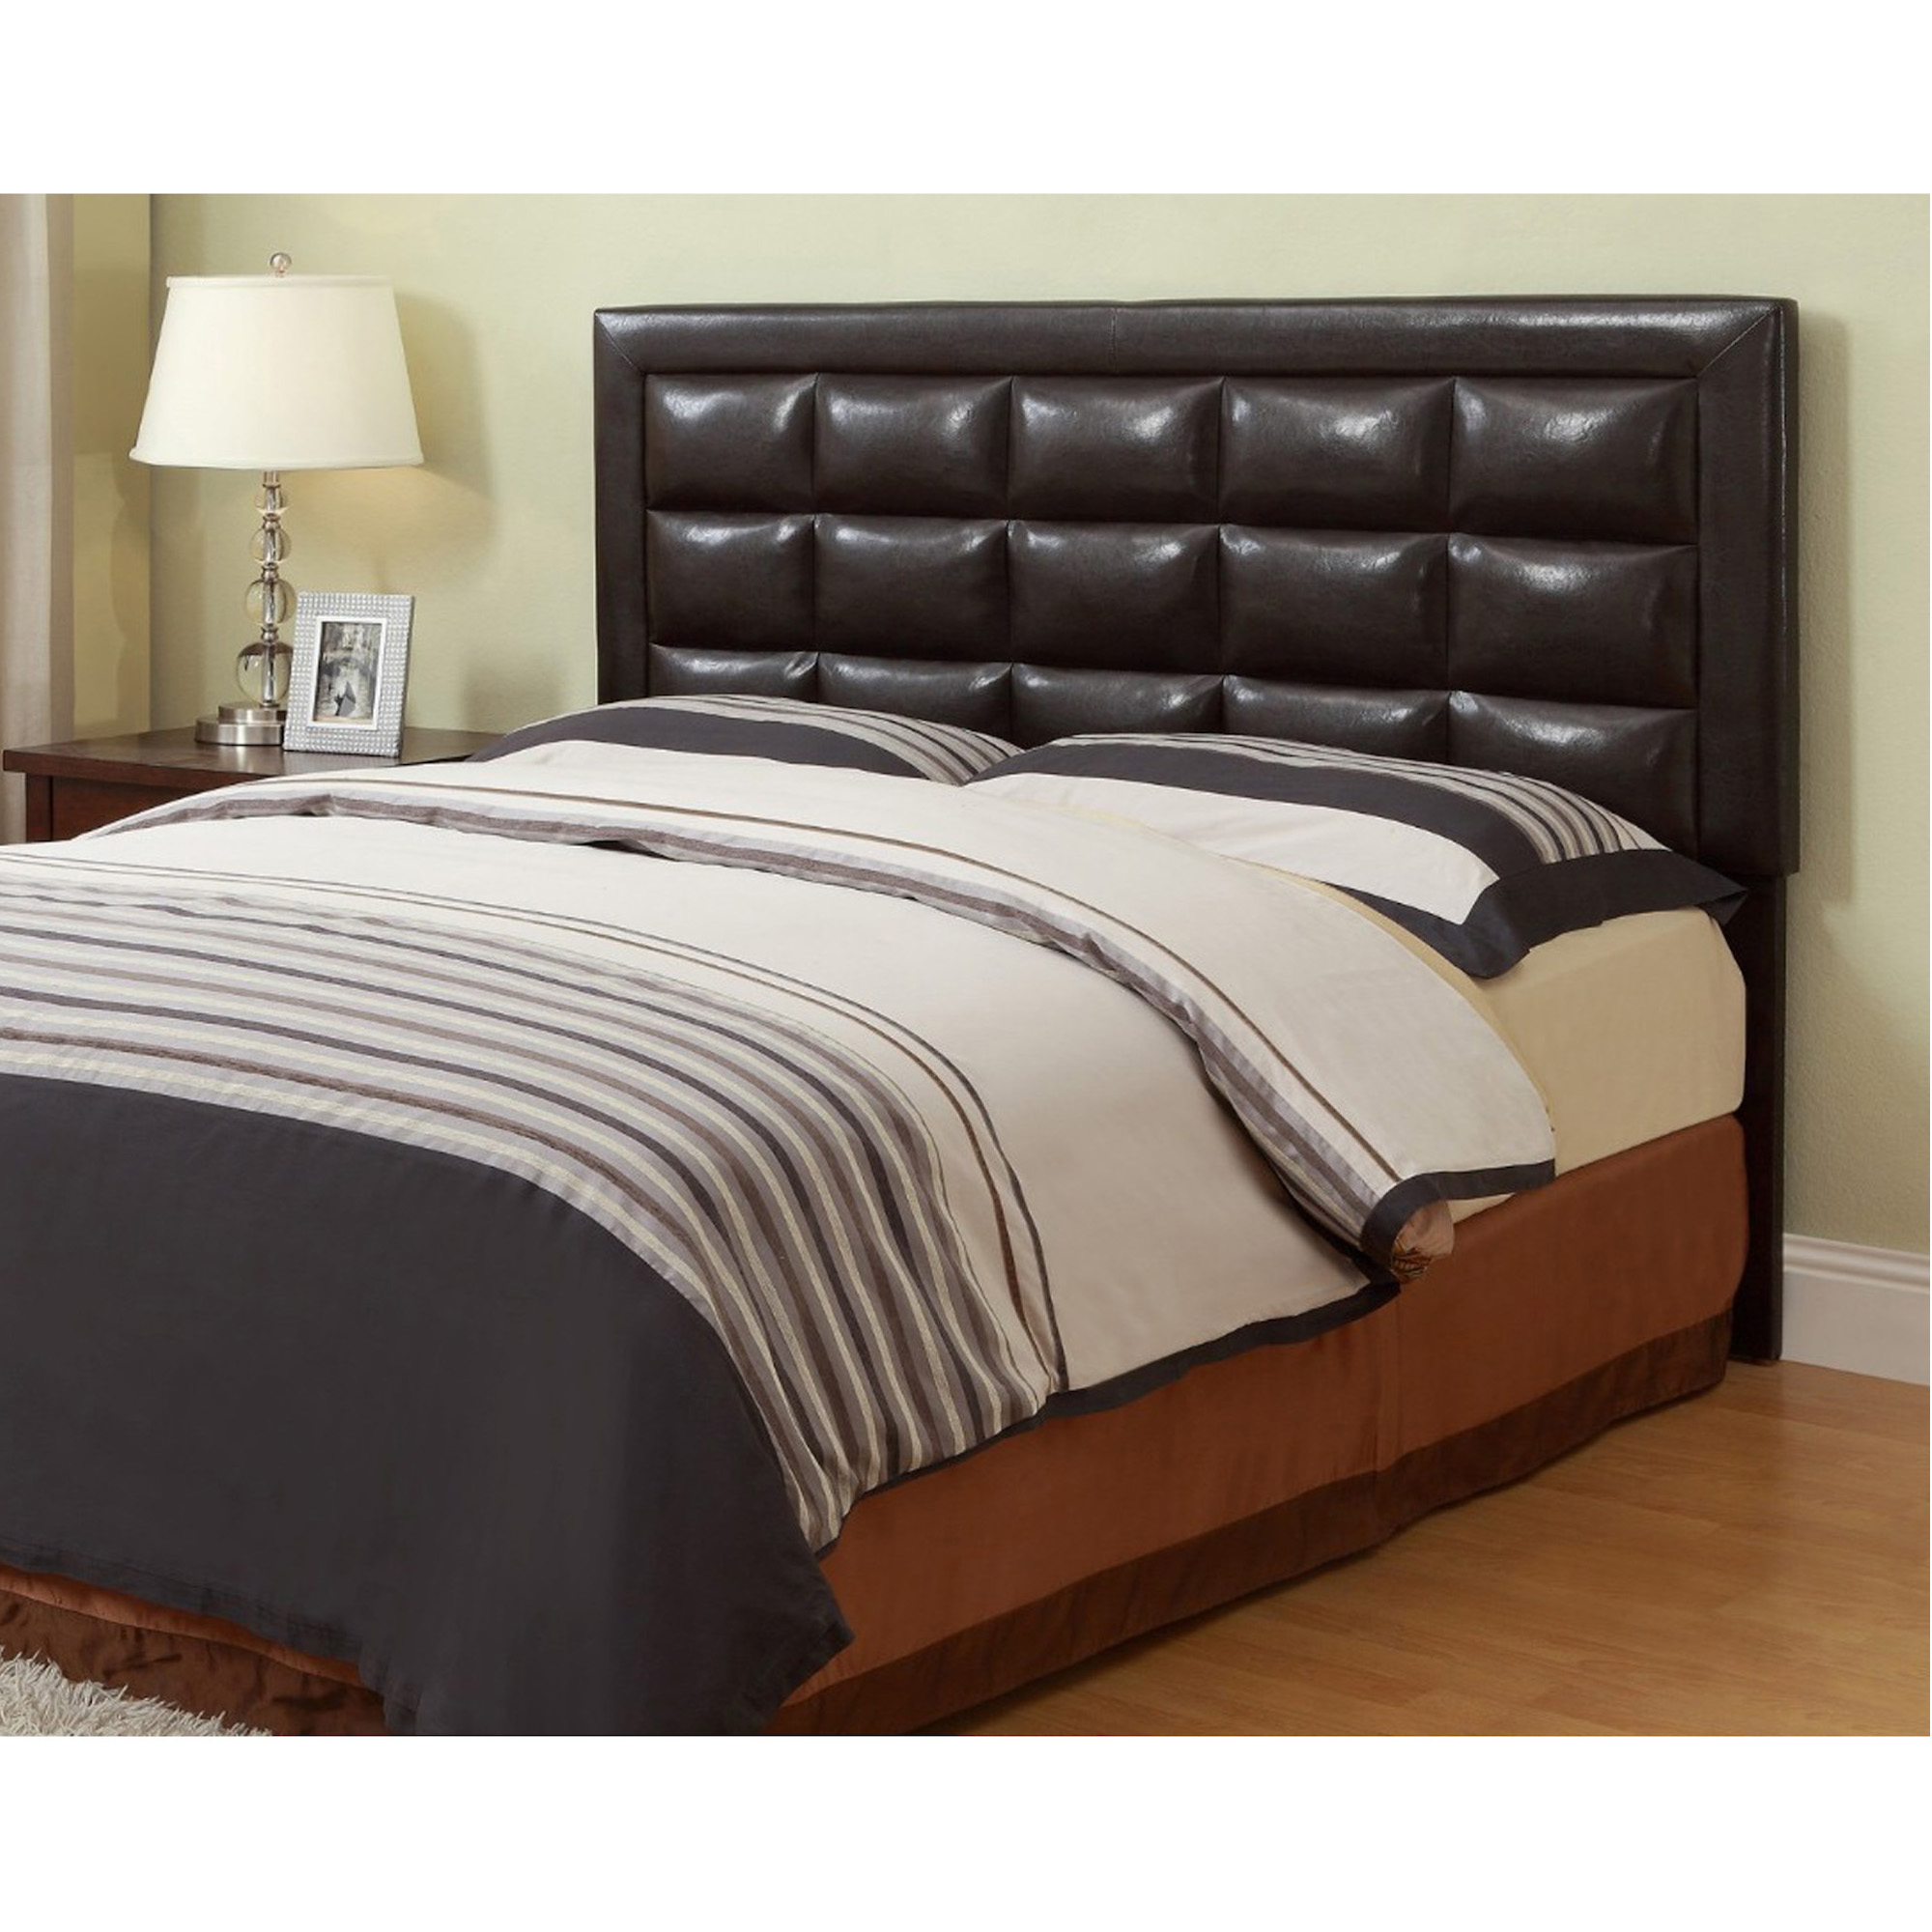 Rent To Own Crown Mark Inc Queen Faux Leather Headboard With Tight Top Mattress And Base At Aaron S Today